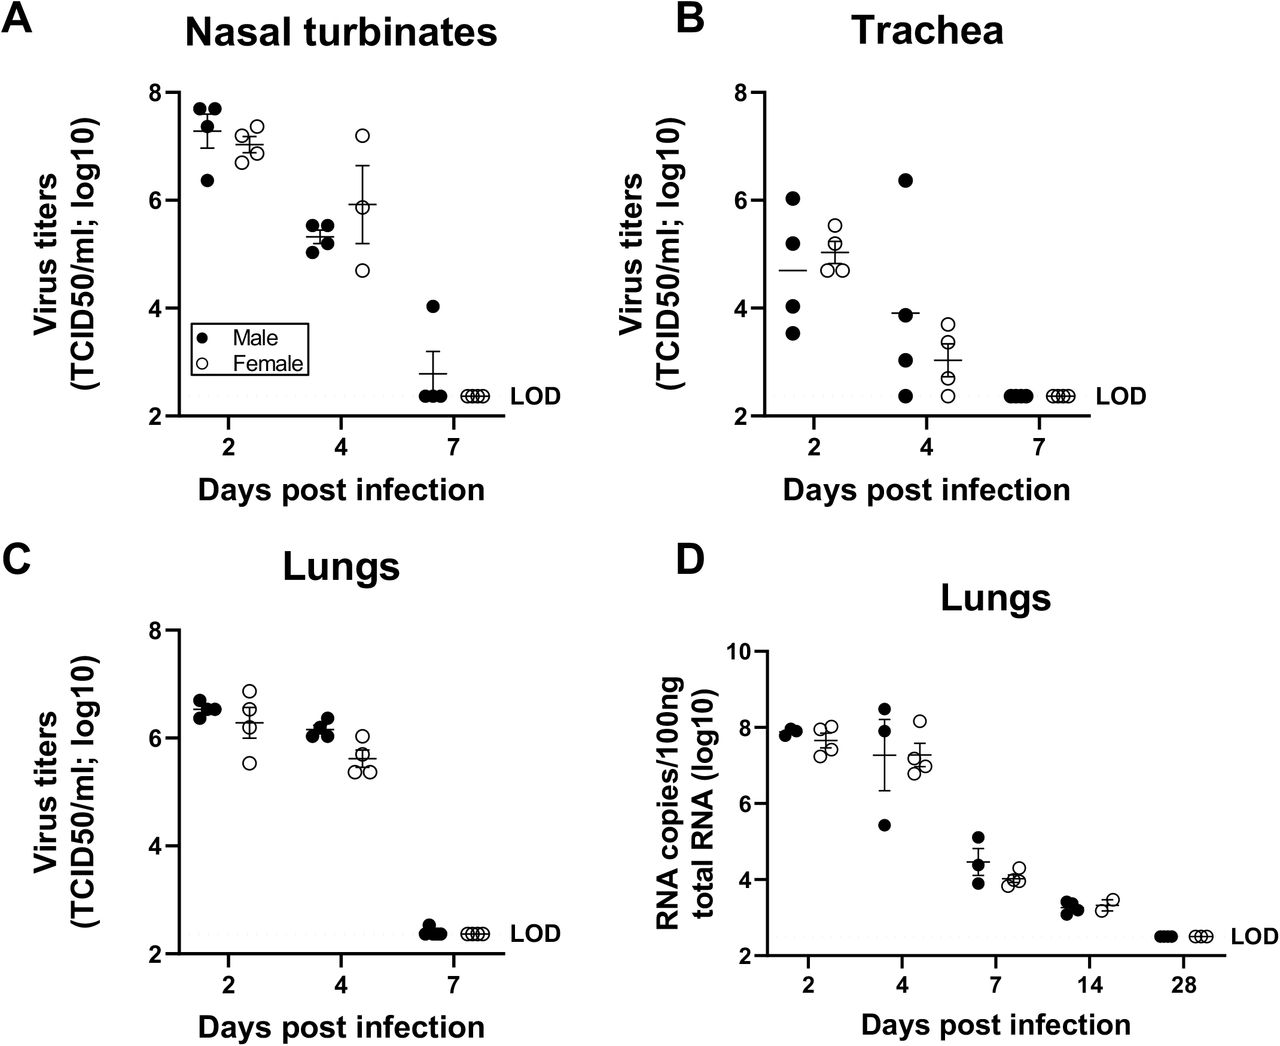 Virus titers were comparable in the respiratory system of SARS-CoV-2 infected male and female hamsters. Adult (8-10 weeks) male and female golden Syrian hamsters were infected with 10 5 TCID 50 of SARS-CoV-2. Infectious virus titers in the homogenates of nasal turbinates (A), trachea (B), and lungs (C), were determined by TCID 50 assay on 2, 4, and 7 dpi. Likewise, virus RNA copies in 100ng of total RNA were tested in the lungs of infected hamsters at 2, 4, 7, 14 and 28 dpi (D). Data represent mean ± standard error of the mean from one or two experiment(s) (n = 3-5/group) and were analyzed by two-way ANOVA (mixed-effects analysis) followed by Bonferroni's multiple comparison test.